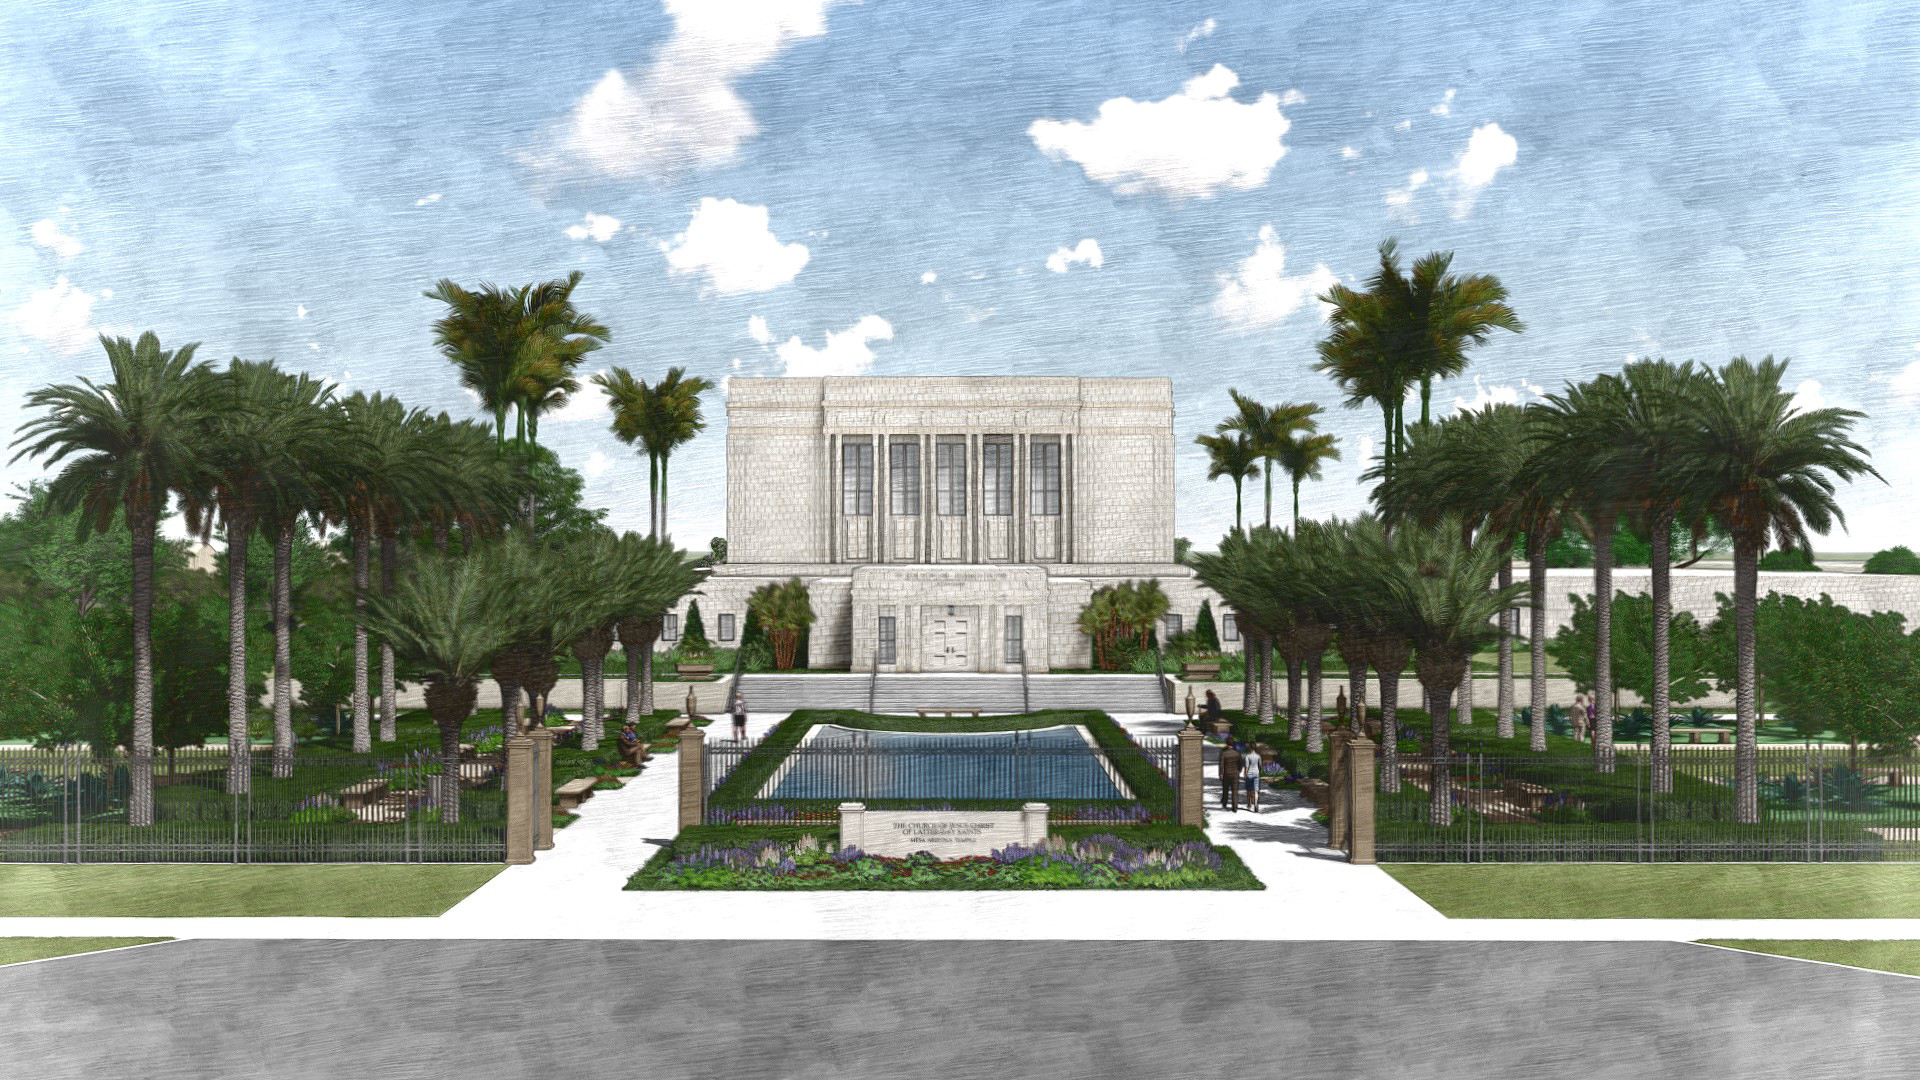 Rendering of the west entrance of the Mesa Arizona Temple.